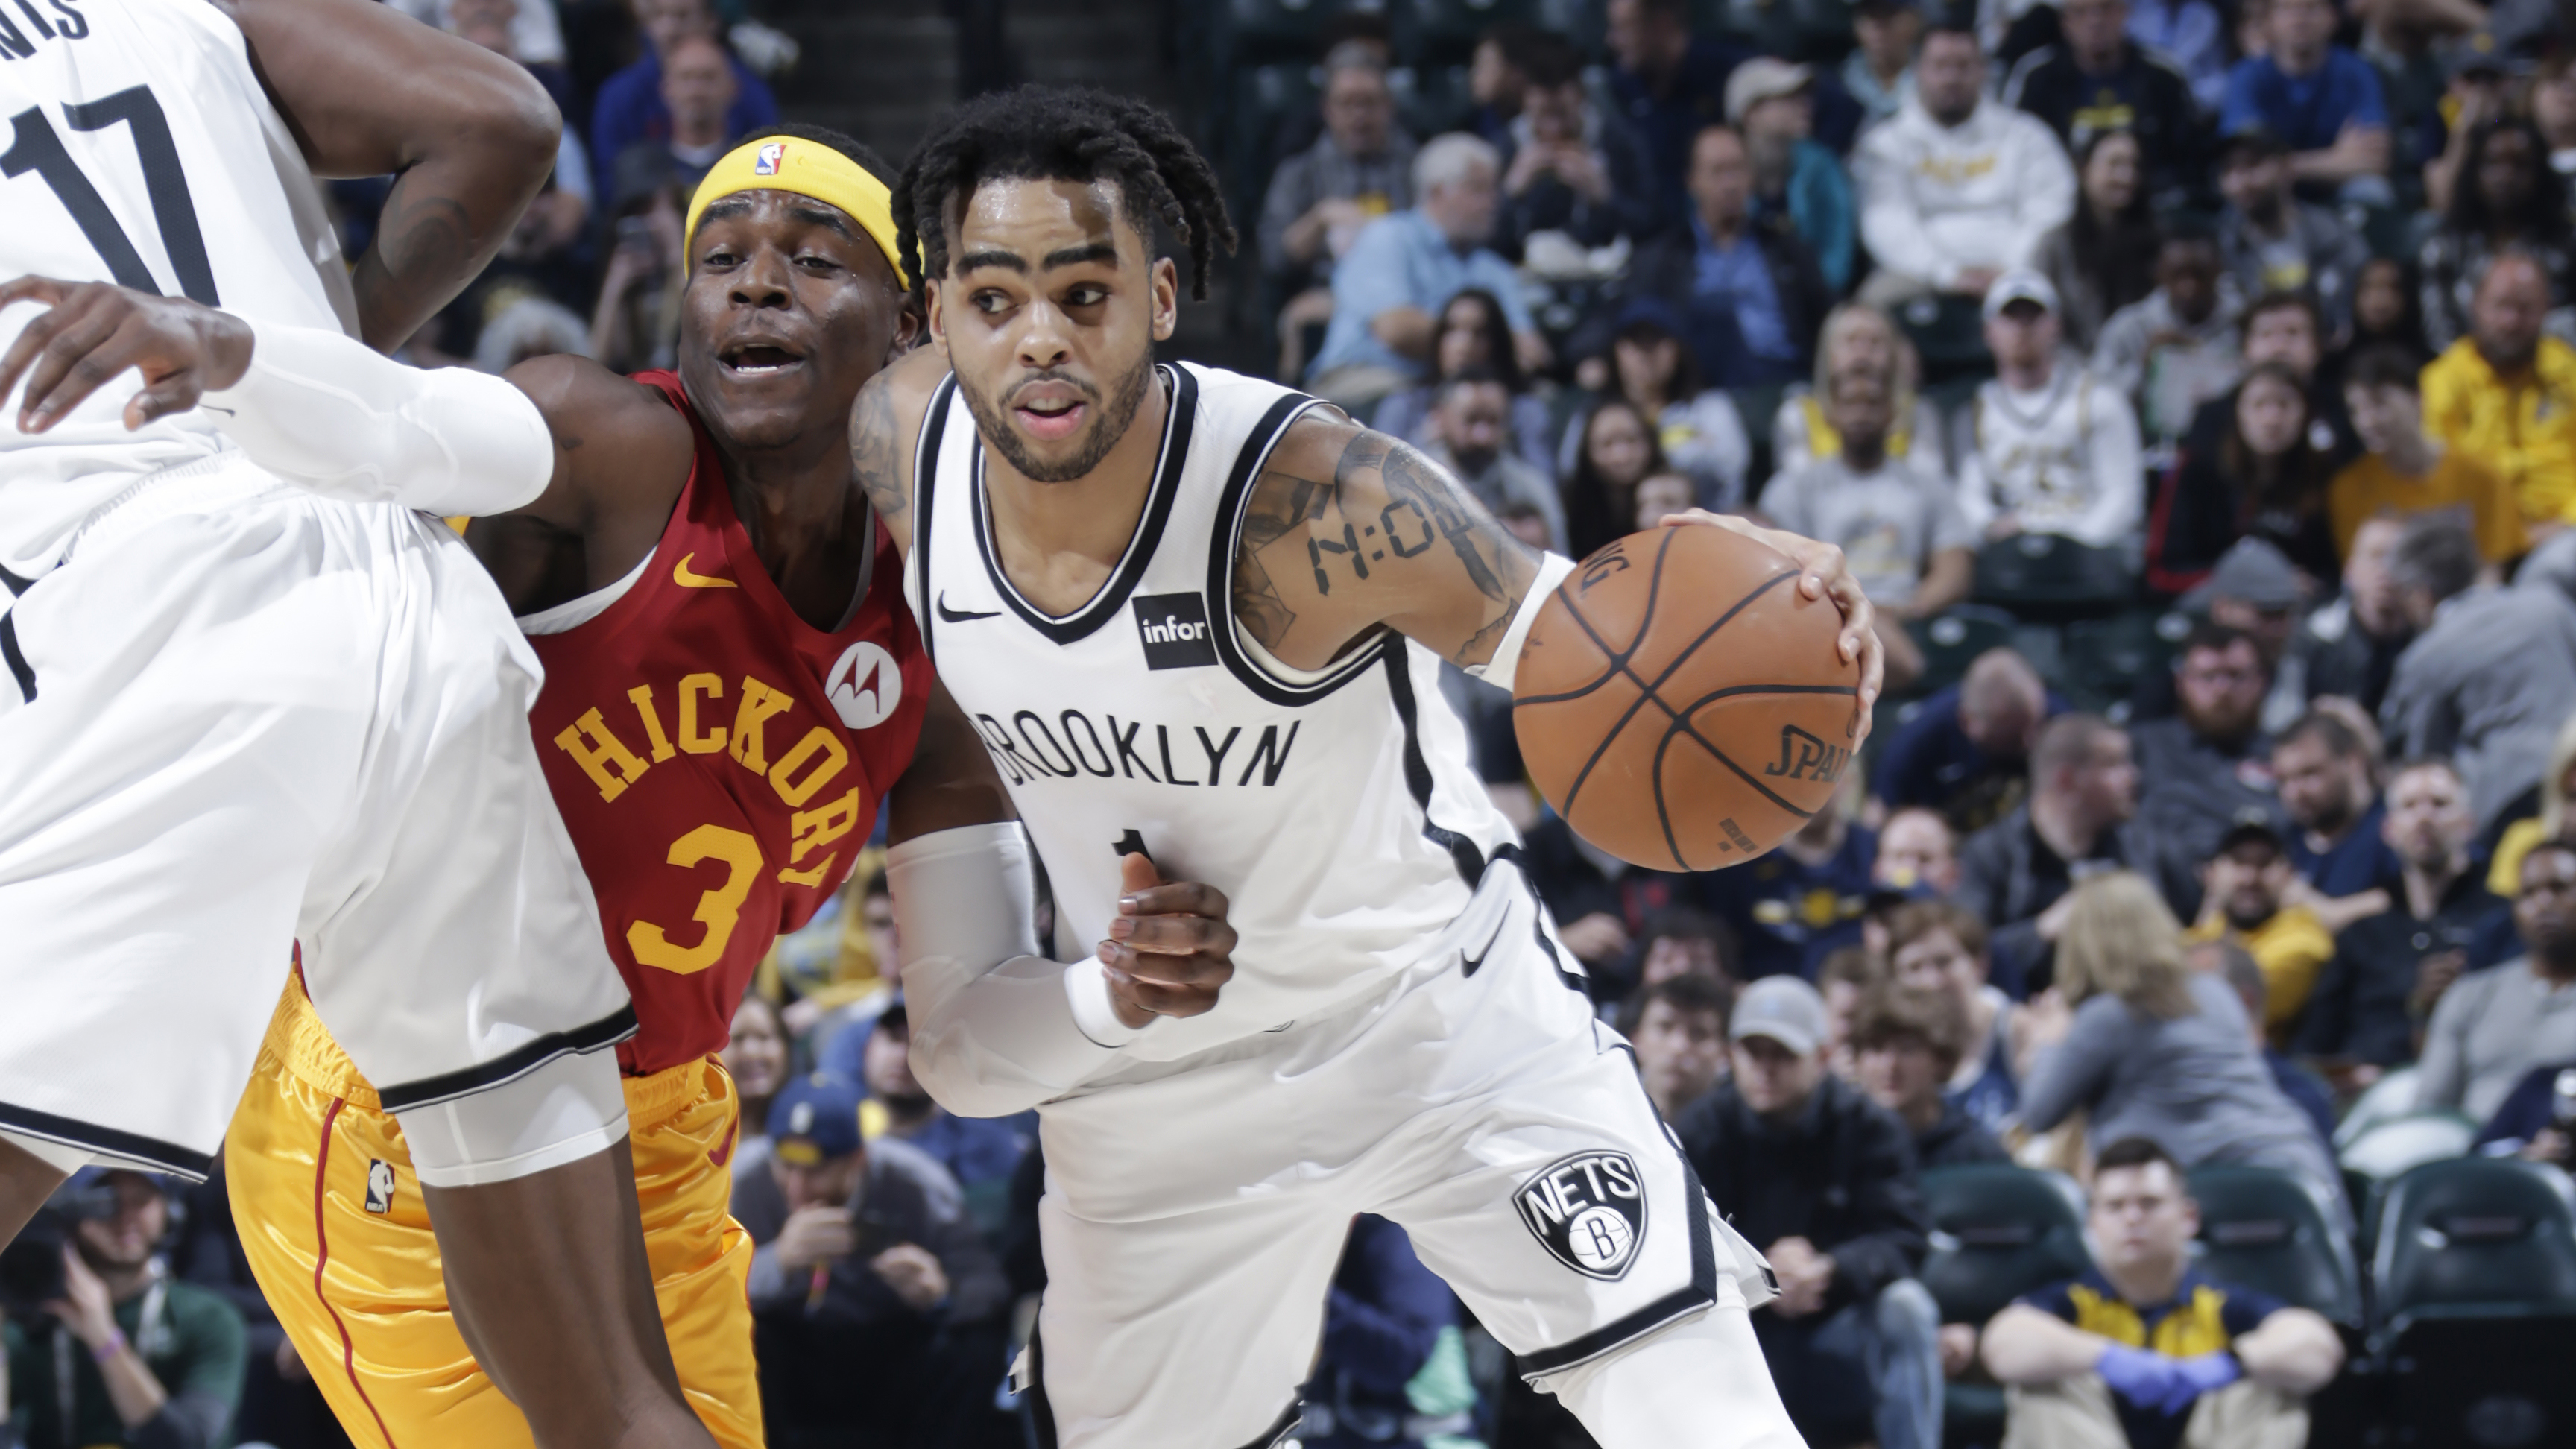 GAME RECAP: Nets 108, Pacers 96